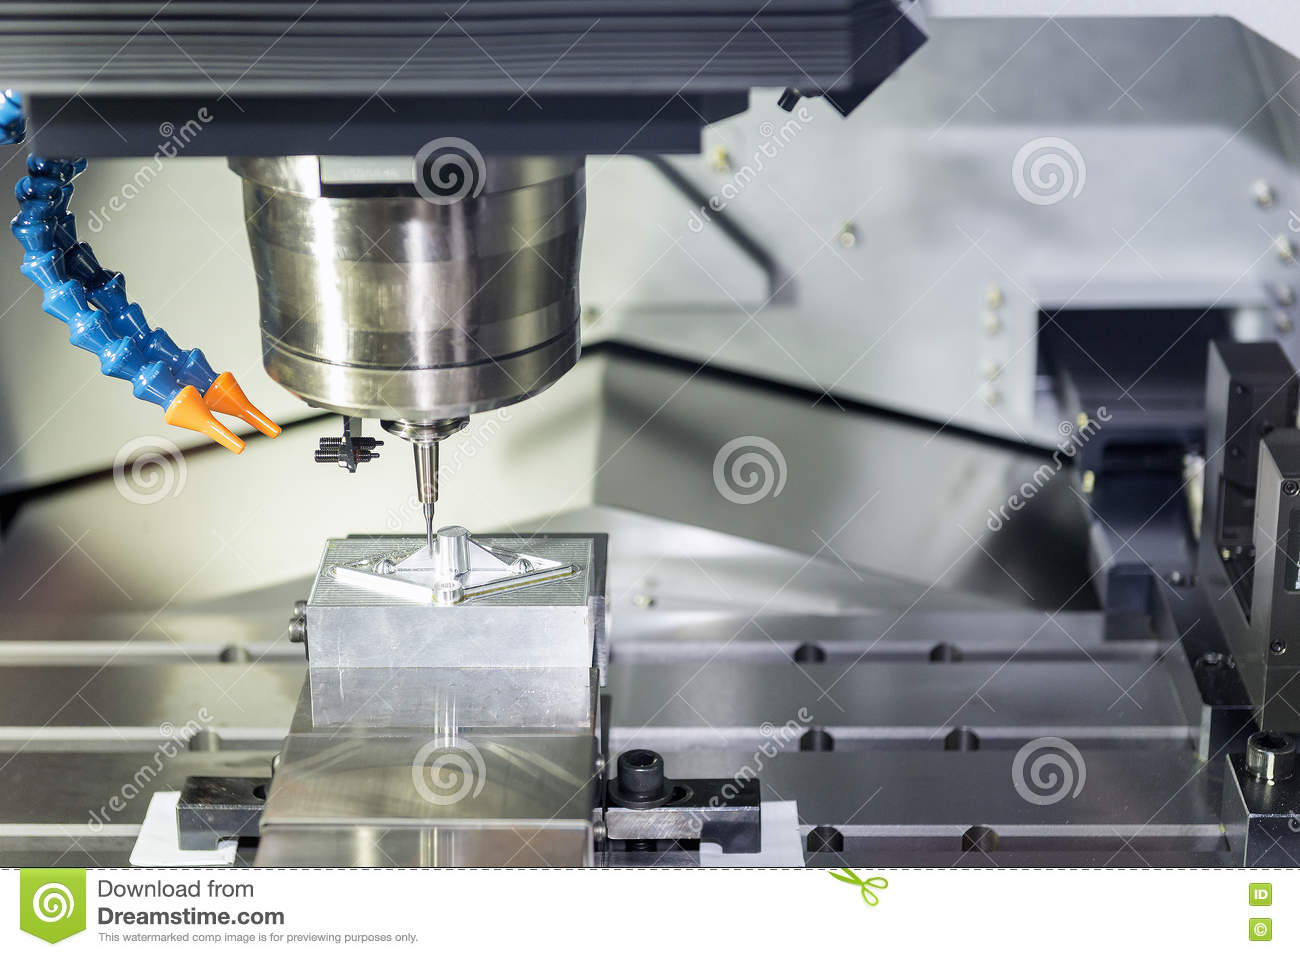 CNC Milling Operation On The Sample Work Pieces Stock Photo - Image